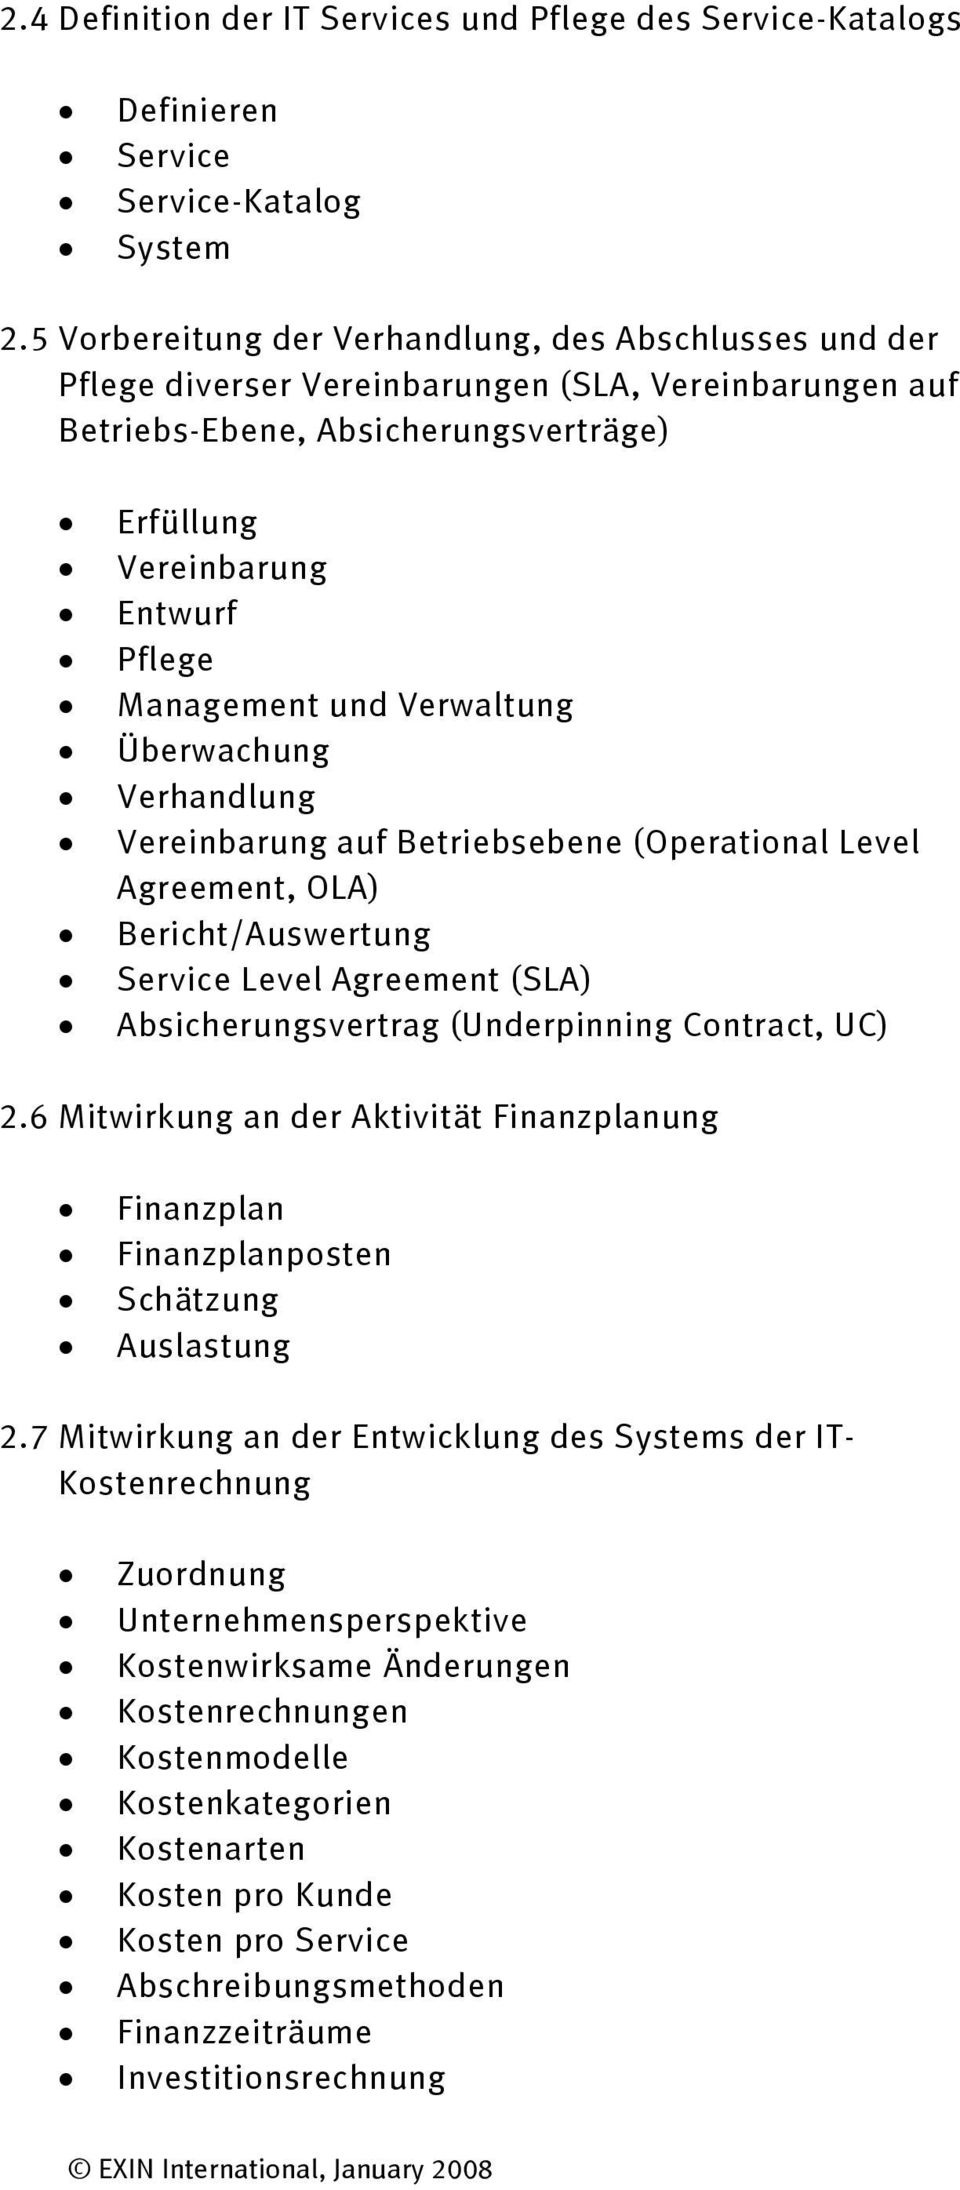 und Verwaltung Überwachung Verhandlung Vereinbarung auf Betriebsebene (Operational Level Agreement, OLA) Bericht/Auswertung Service Level Agreement (SLA) Absicherungsvertrag (Underpinning Contract,